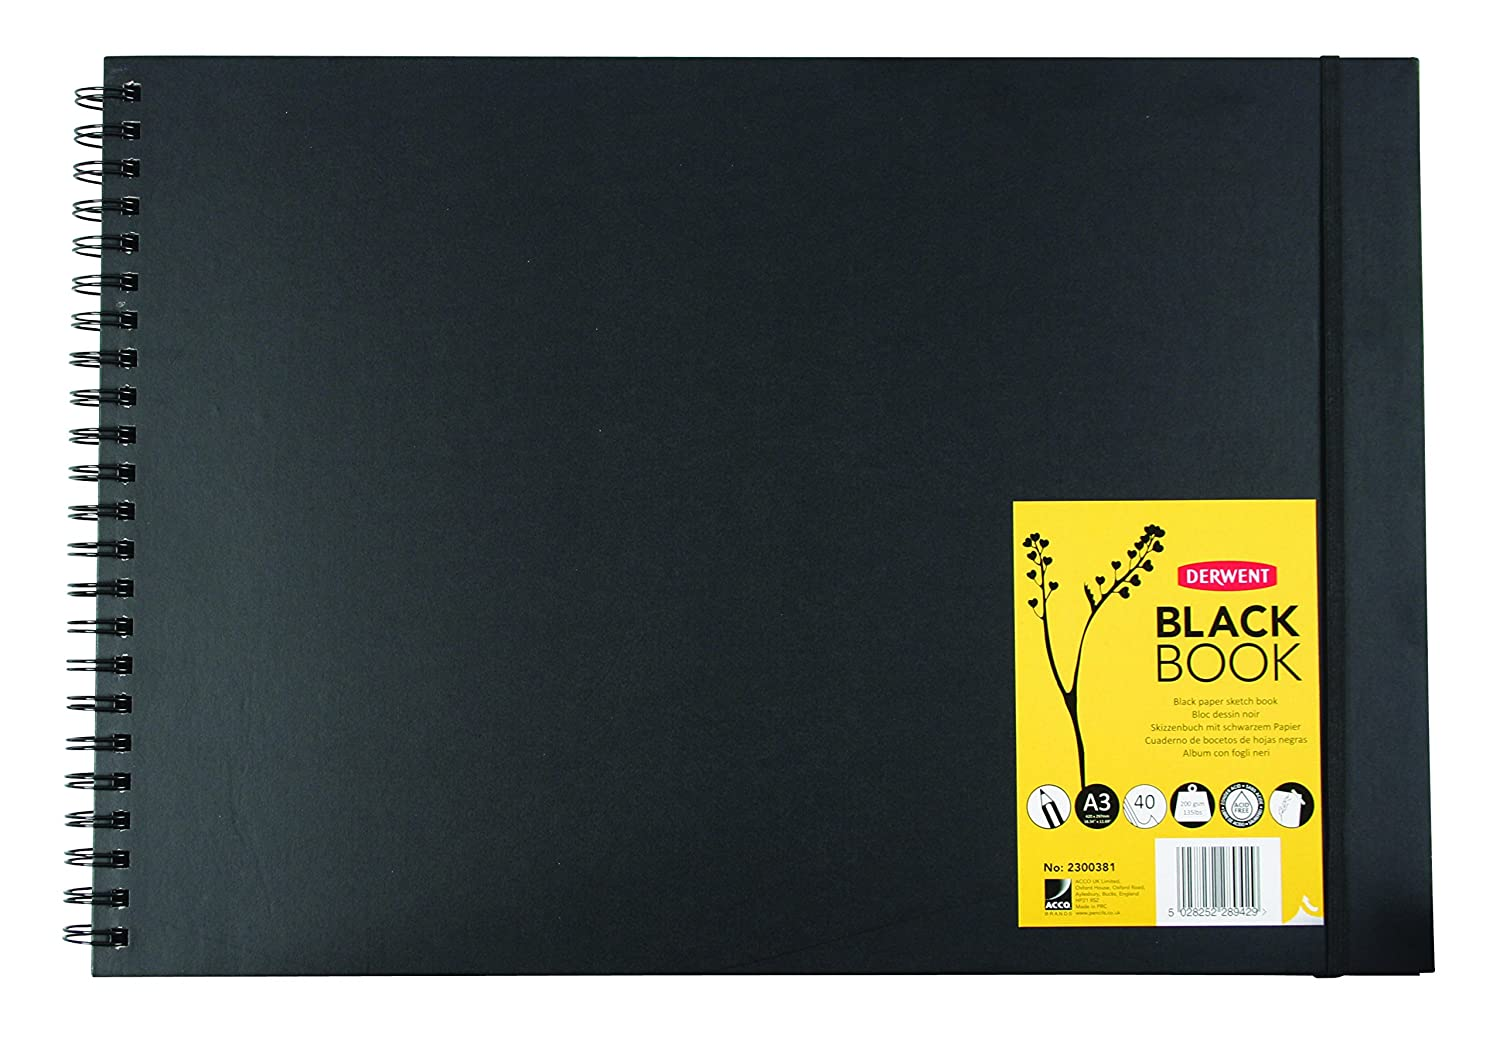 Derwent Black Book Sketch Book A3 (Landscape) by Amazon